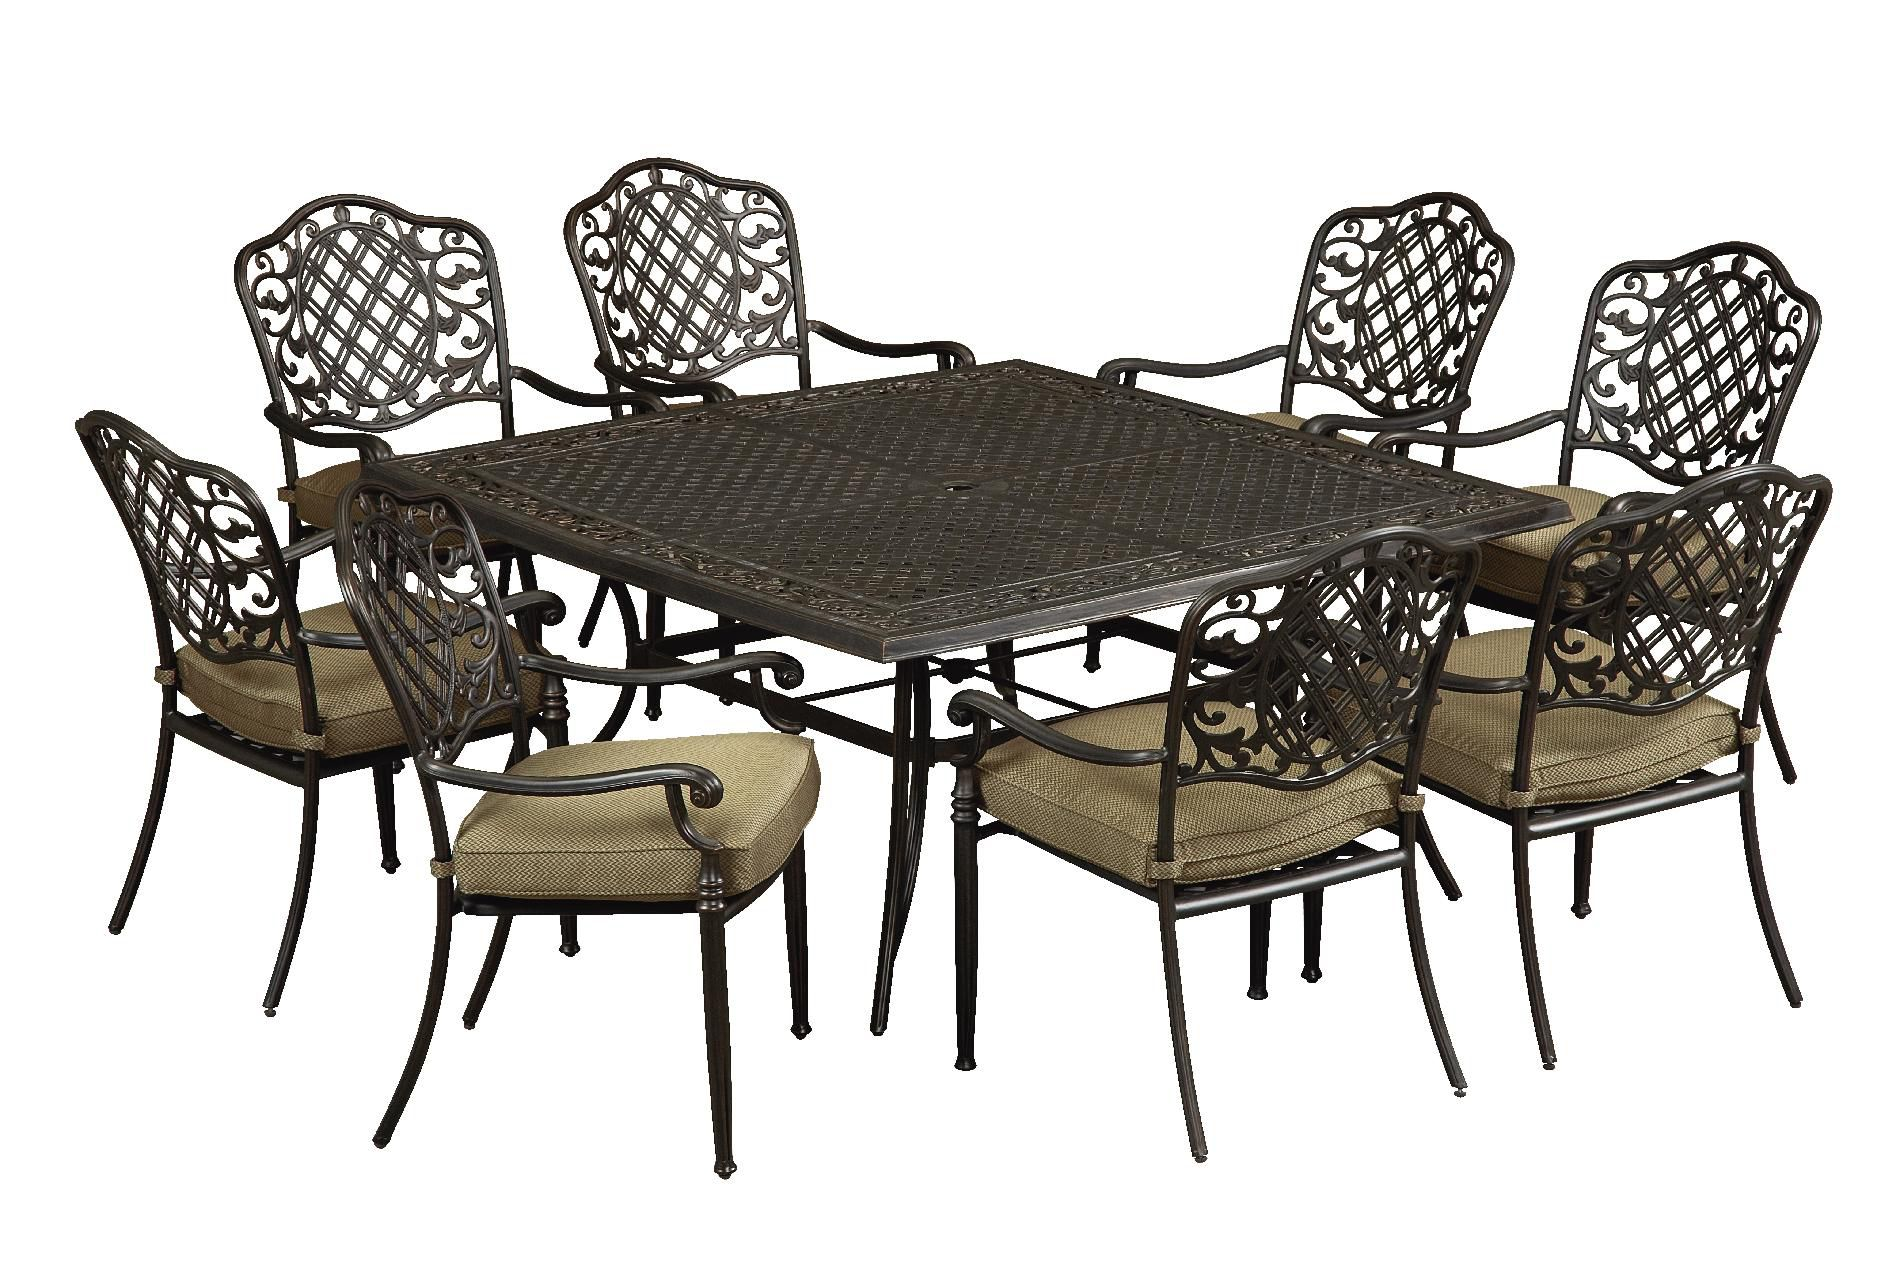 Agio Arcadia 9 Pc. Square Cast Dining Set  *Limited Availability